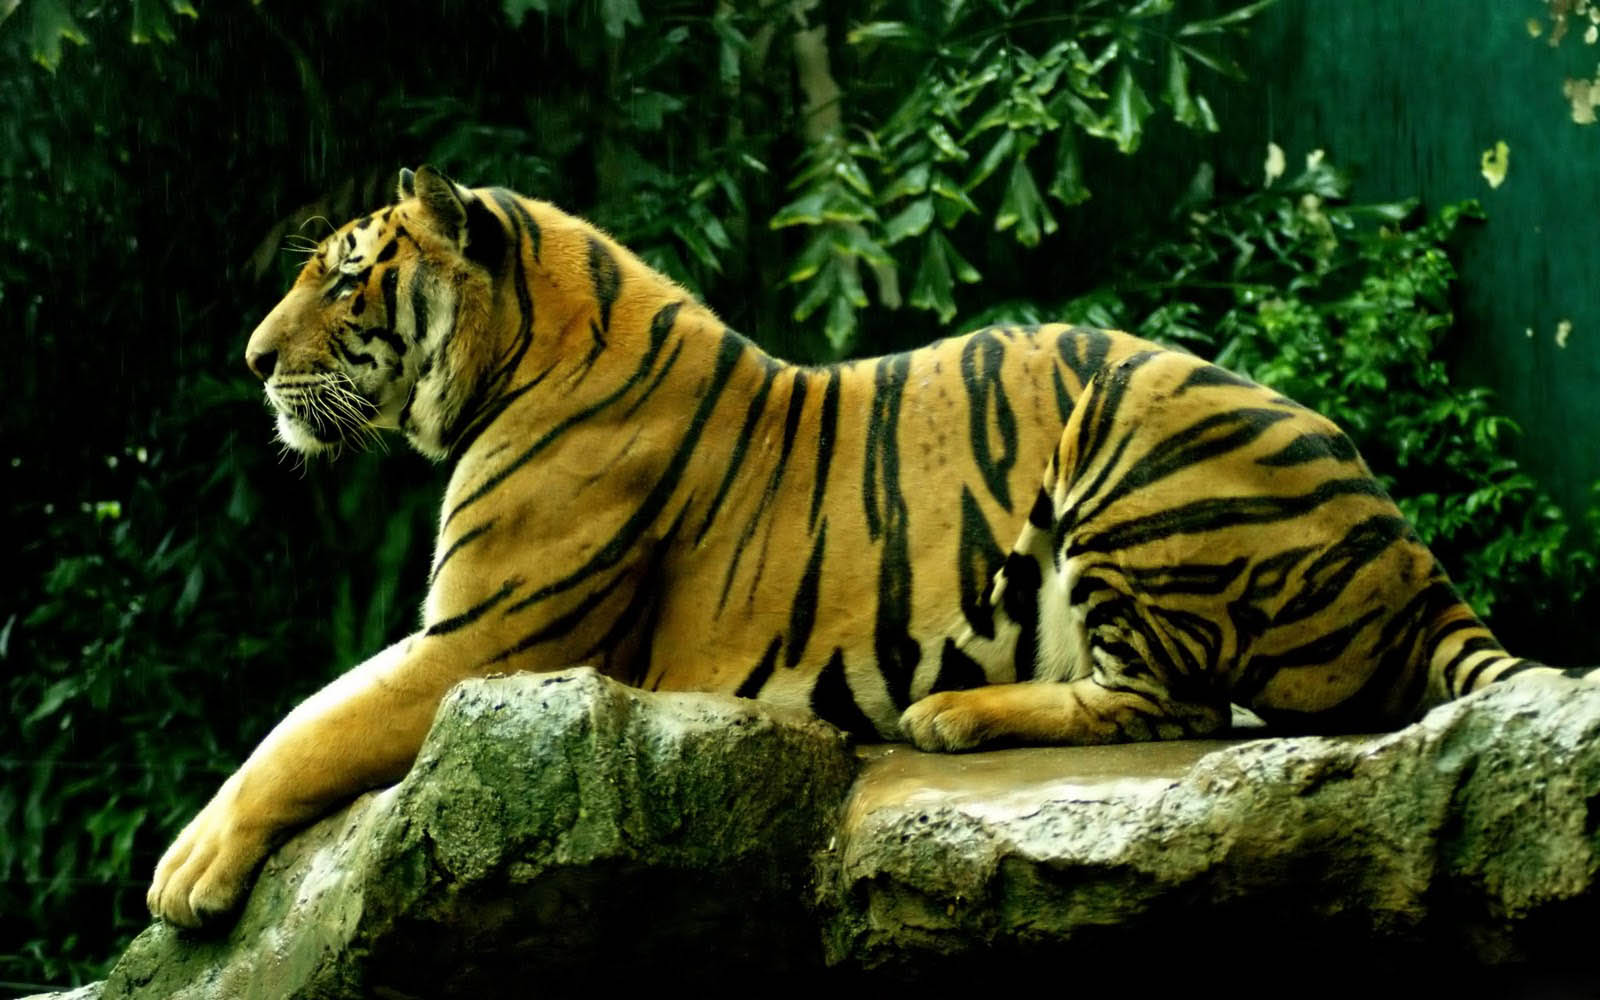 wallpapers Tiger Desktop Wallpapers and Backgrounds 1600x1000